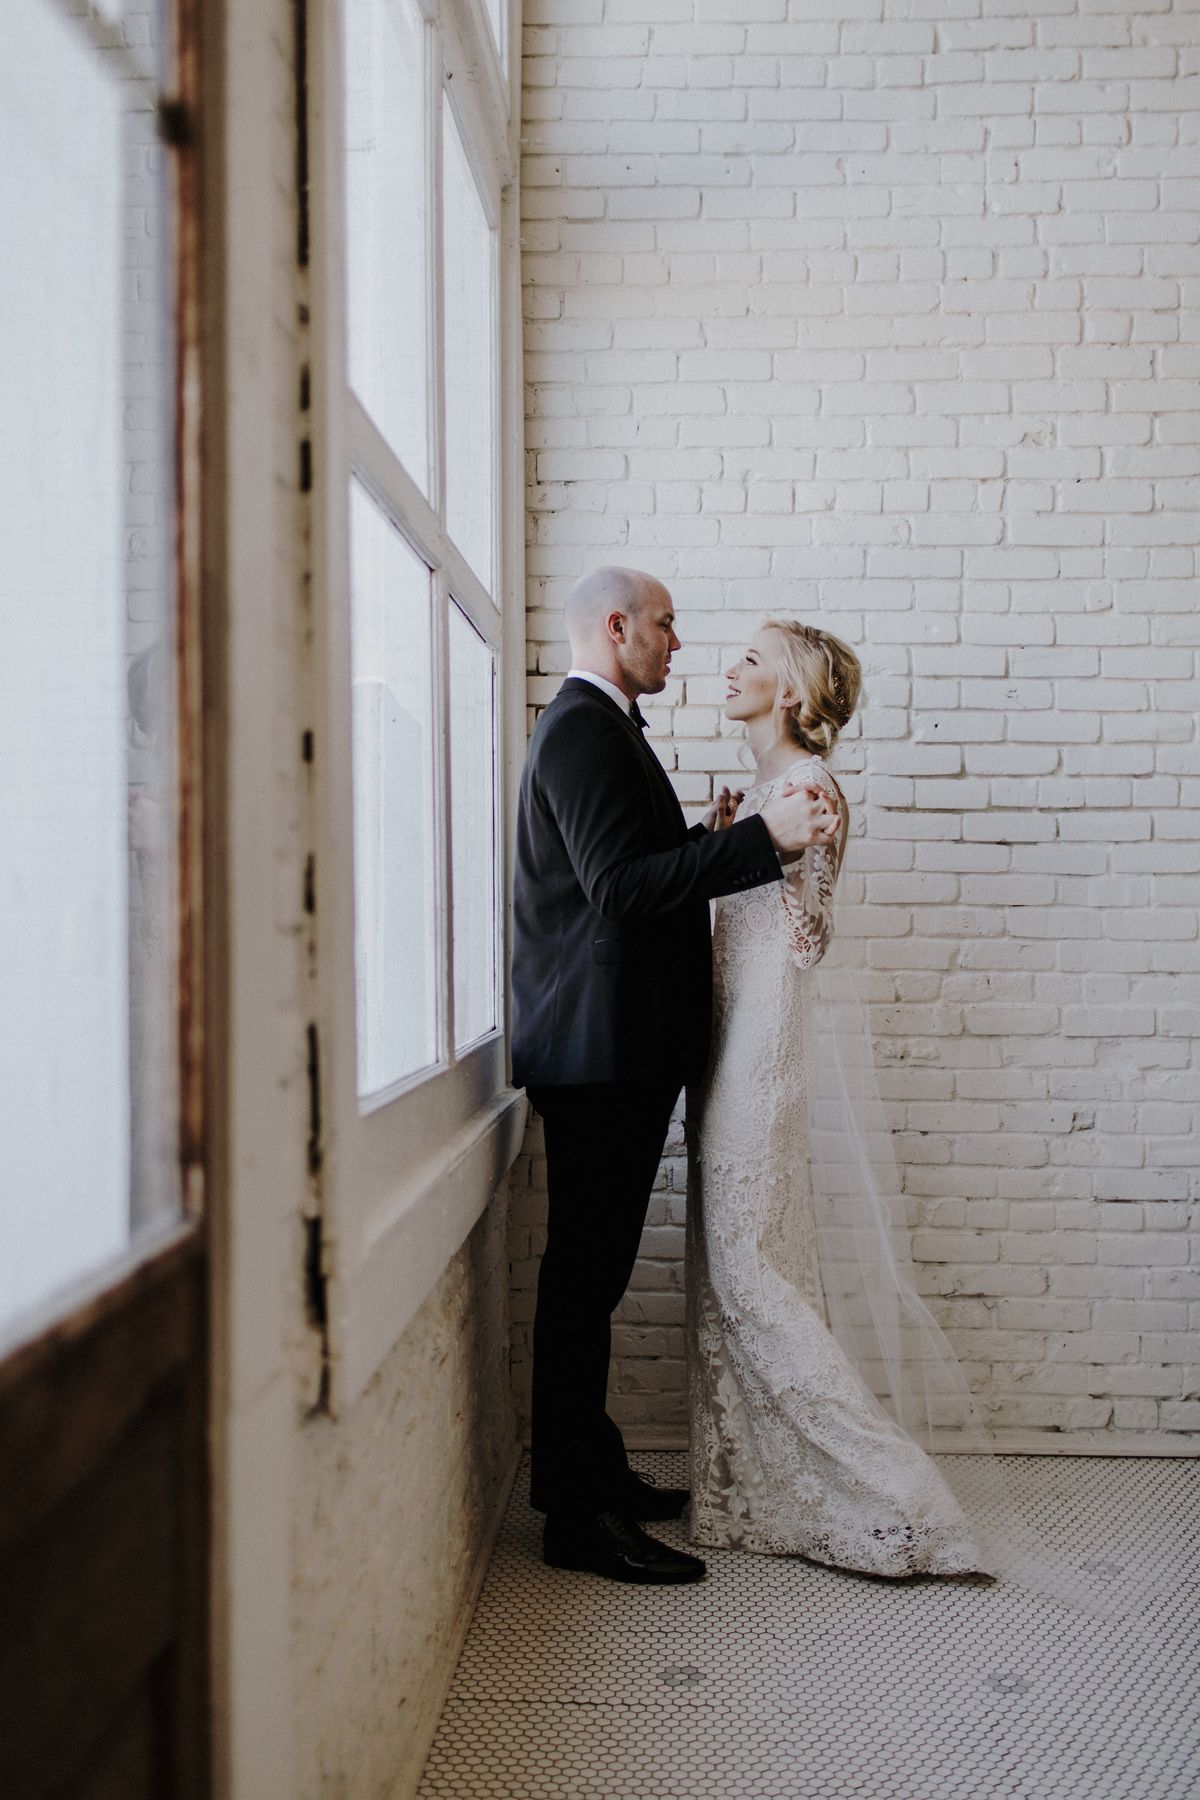 WhiteBrickWallLoftWedding.jpg